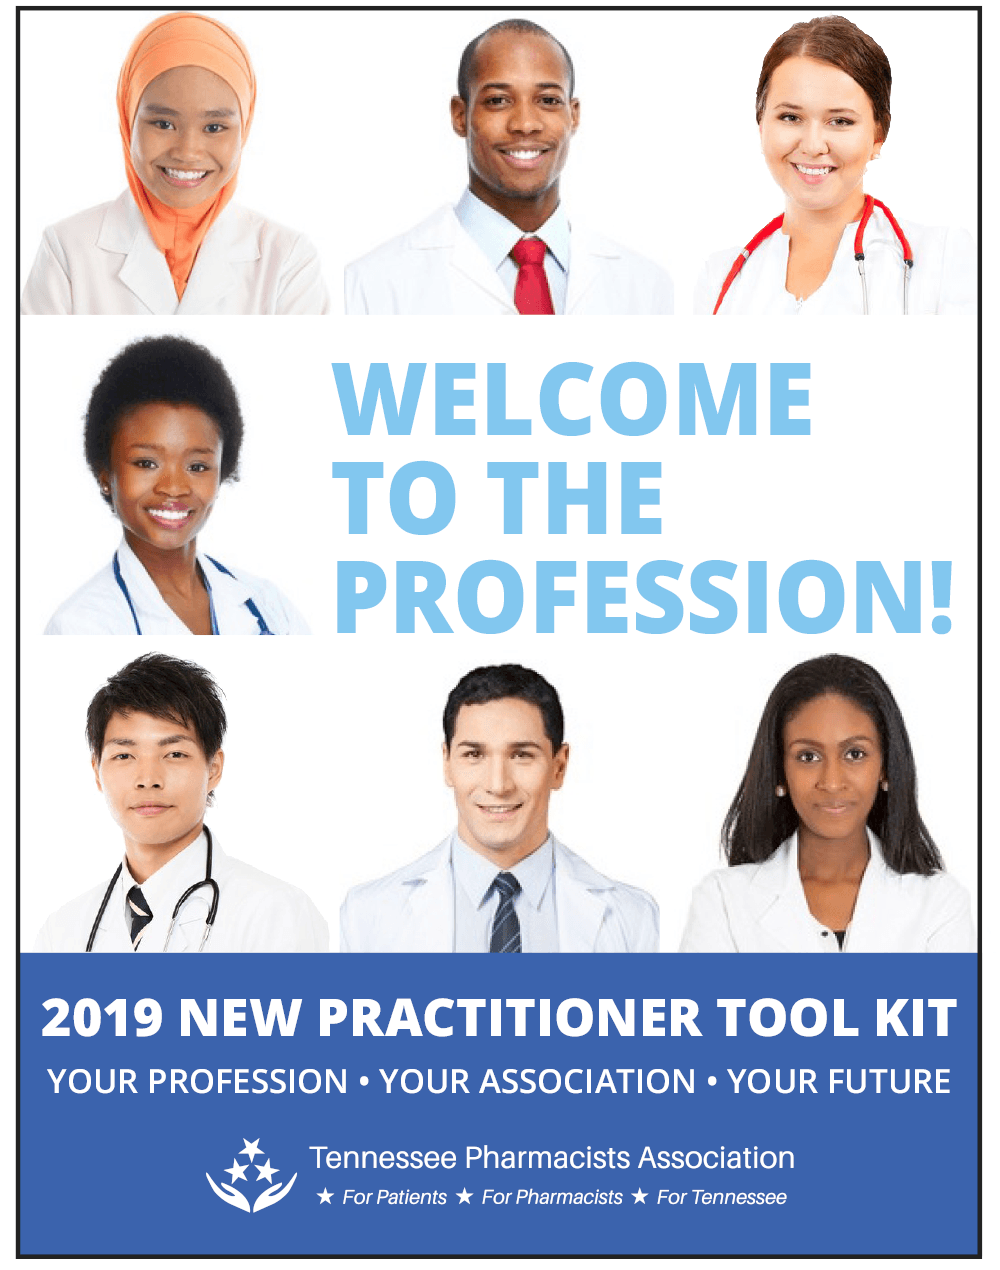 2019 New Practitioner's Tool Kit